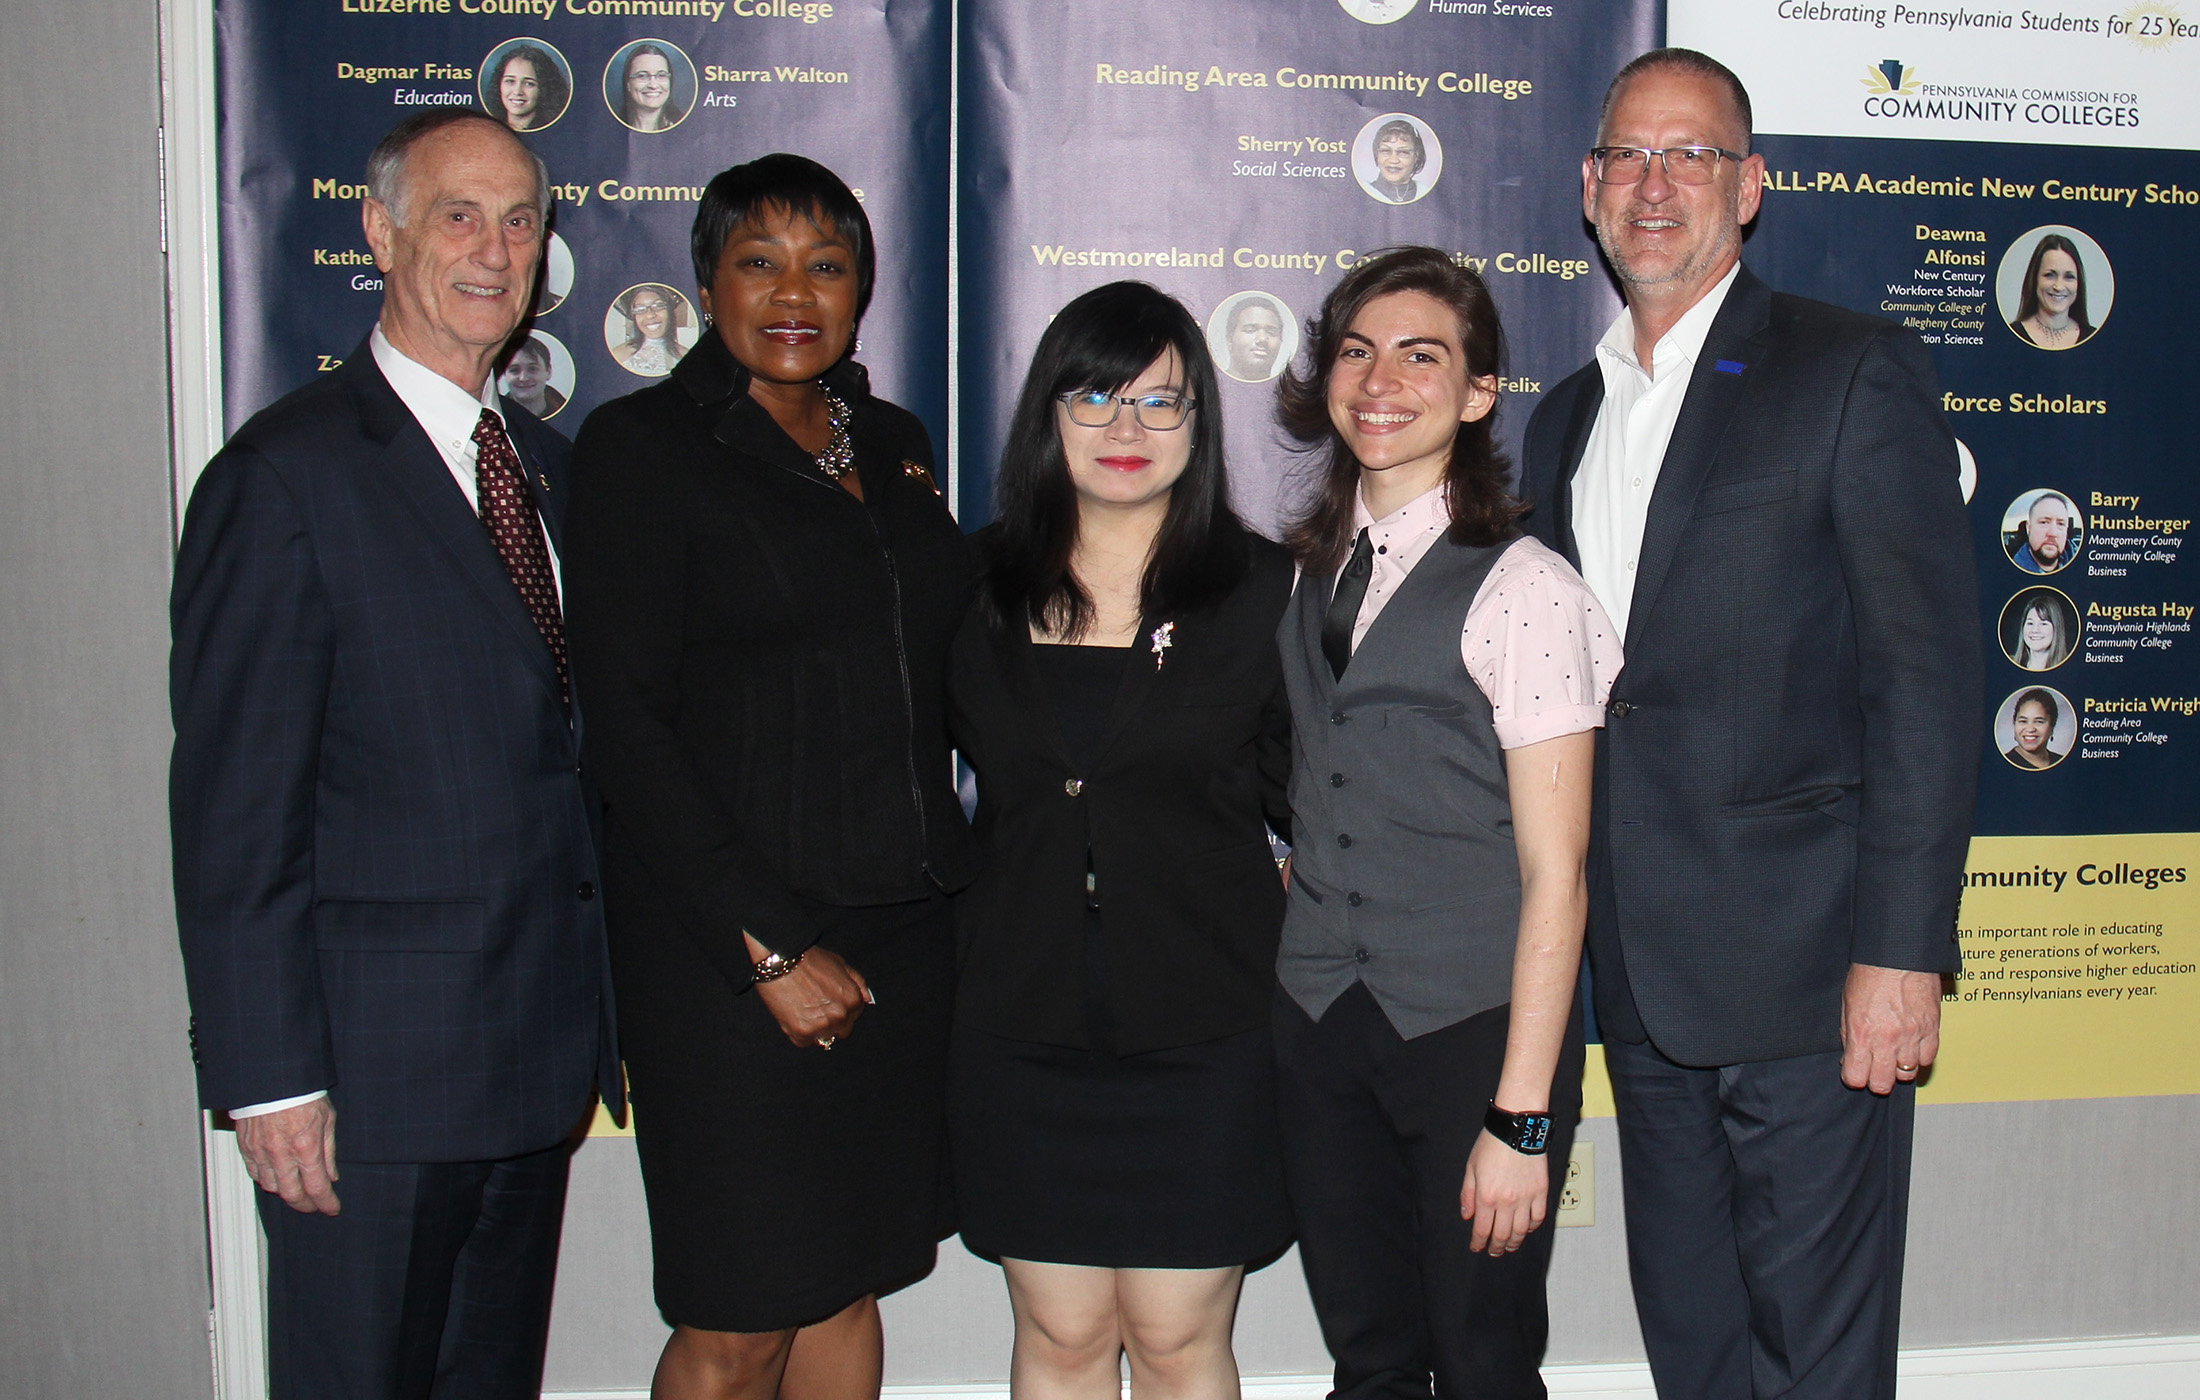 Delaware County Community College Board of Trustees Chair Donald Heller, President Dr. L. Joy Gates Black, All-PA Scholar Zun Phyu Thant, All-PA and Coca-Cola Silver Scholar Em Mirra, and Trustee Michael Ranck